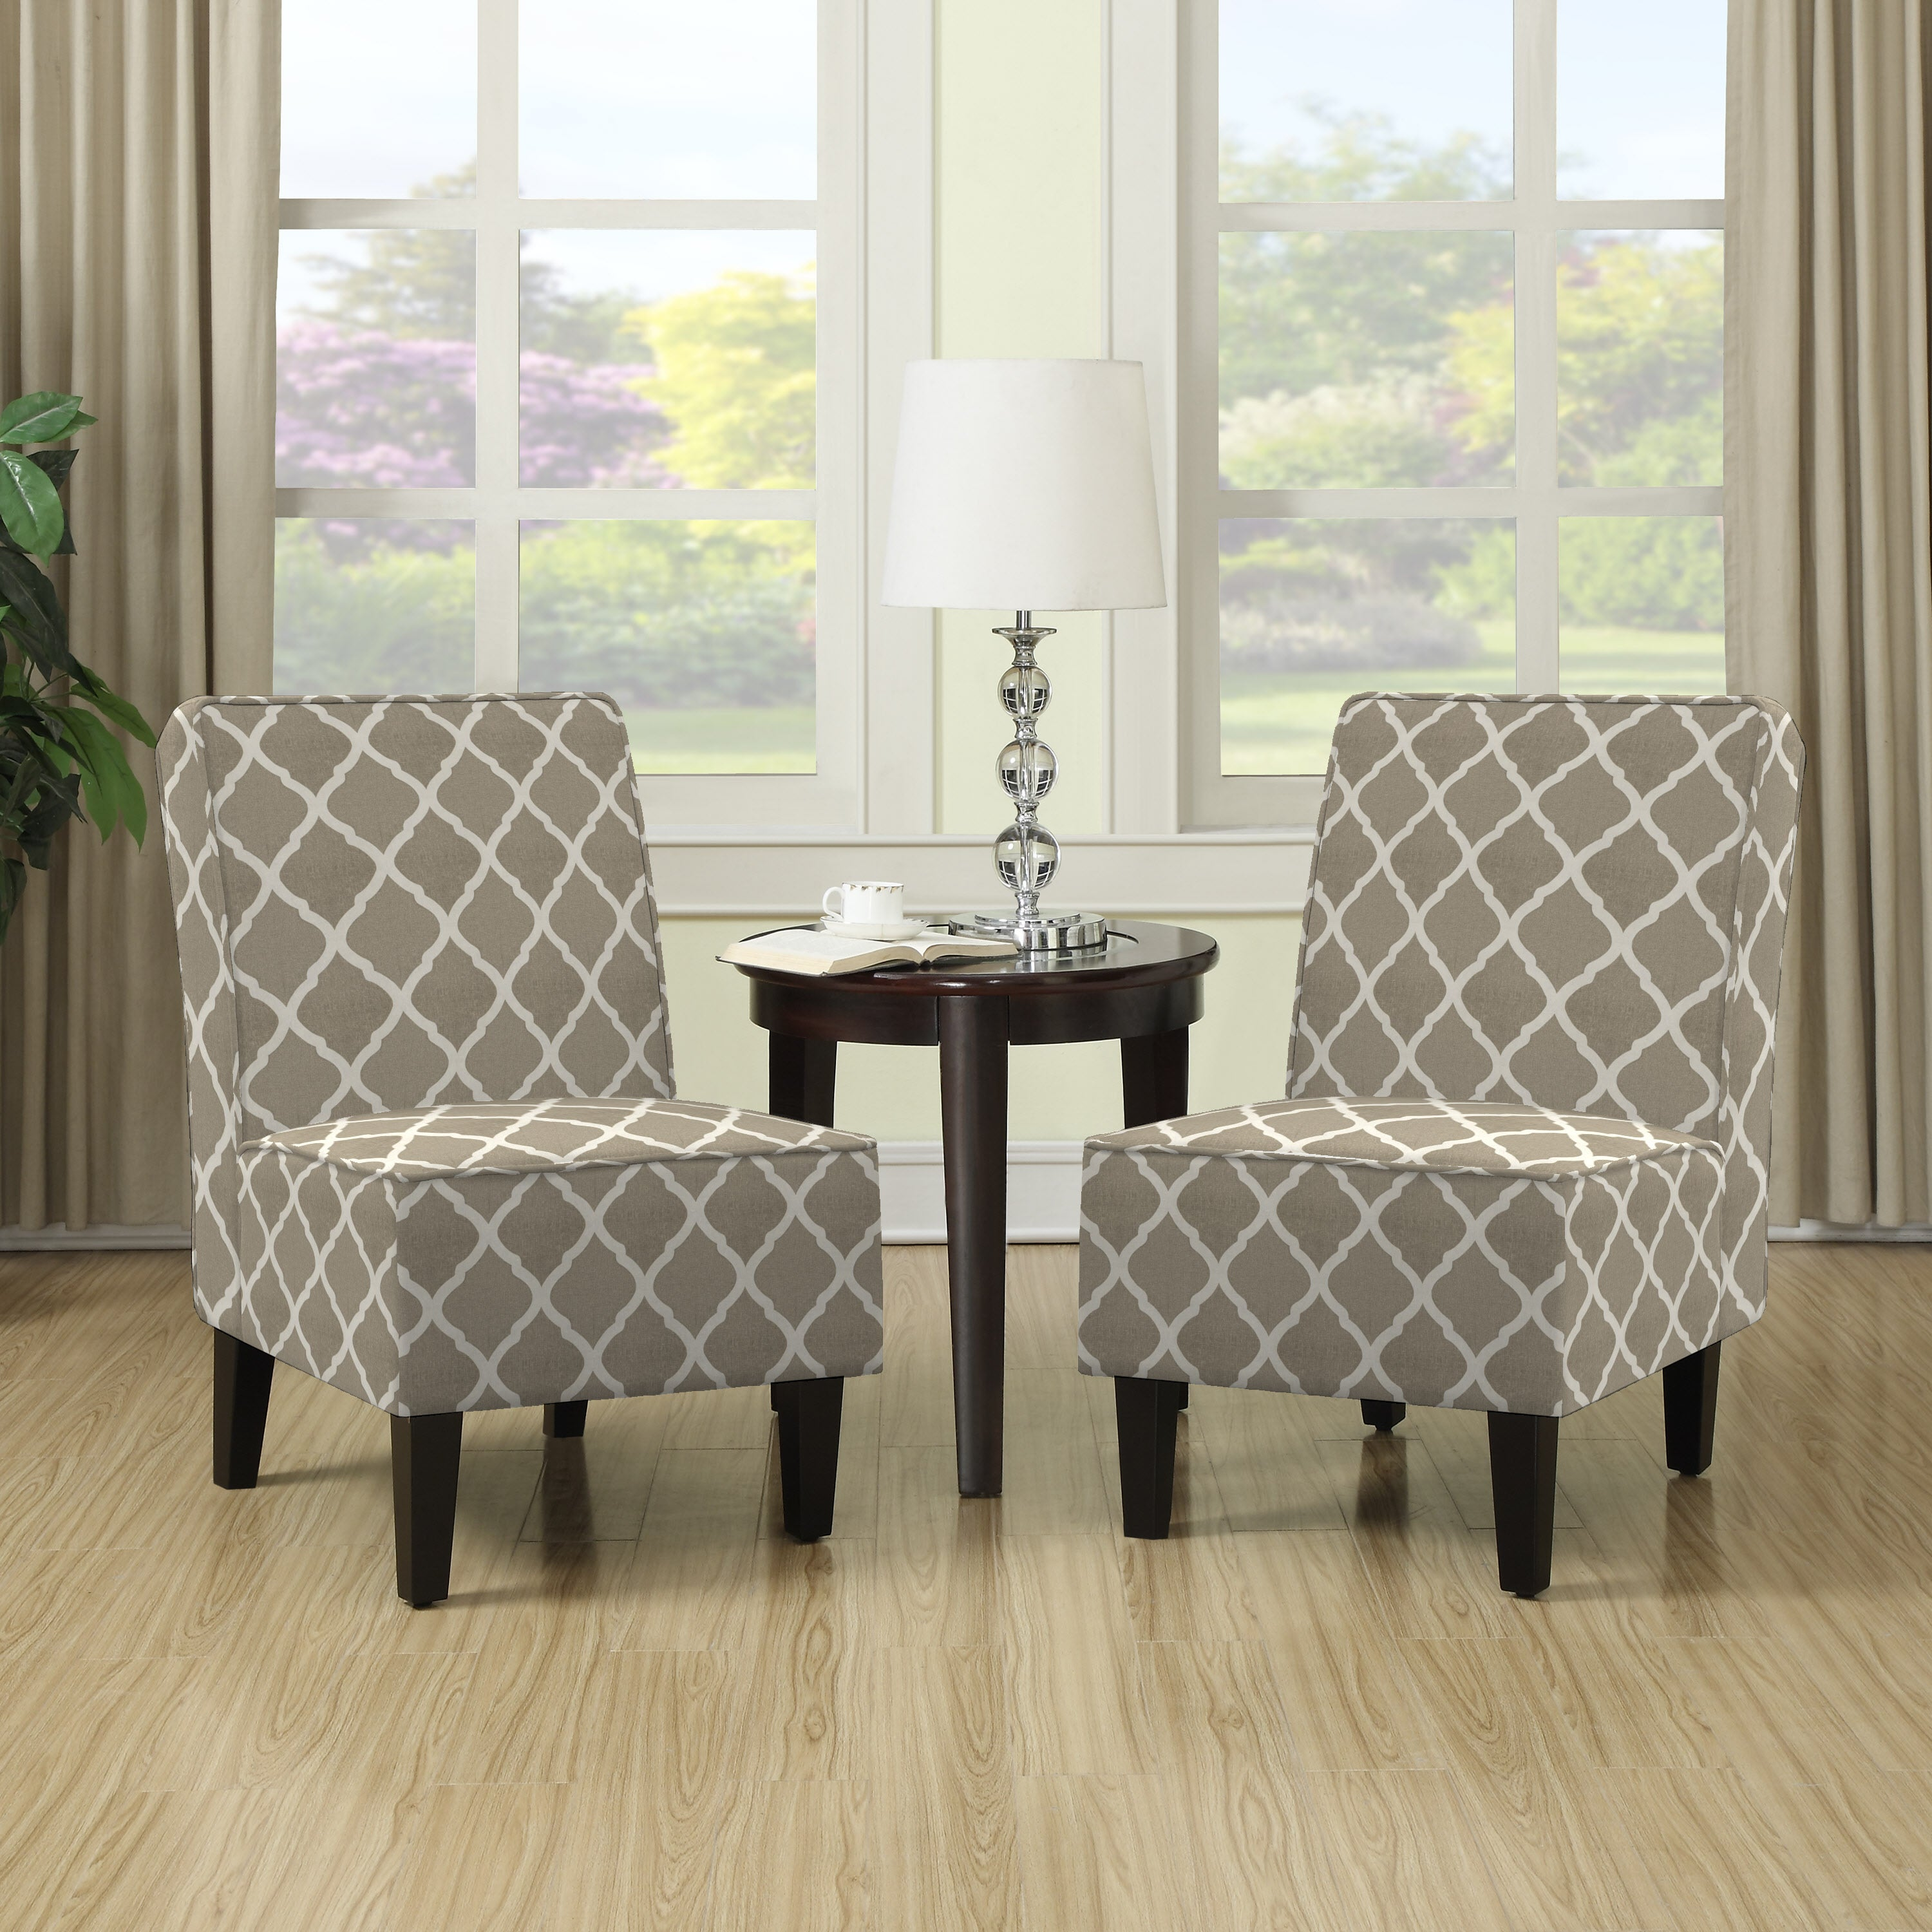 Details About Accent Chairs For Living Room Set Of 2 Armless Tan Club Living Tv Room Bedroom